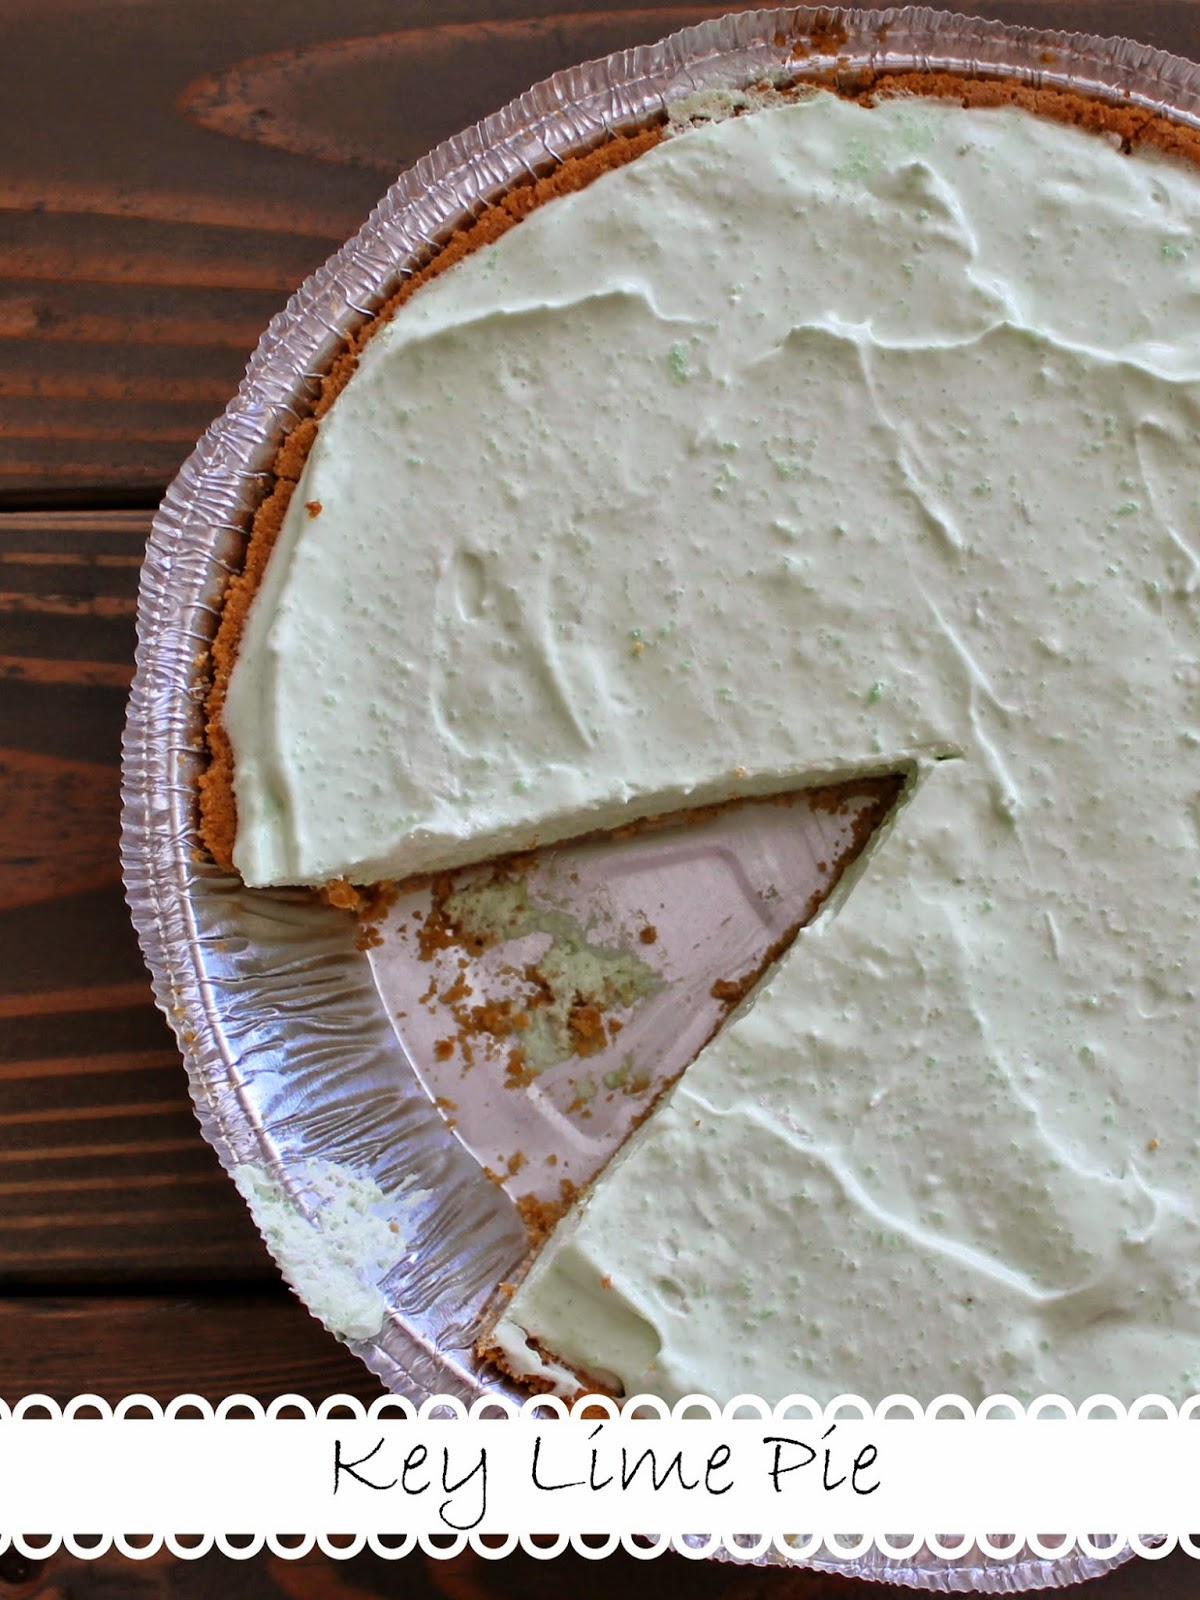 http://wonderfullymadebyleslie.blogspot.com/2014/03/keylime-pi-happy-pi-day.html